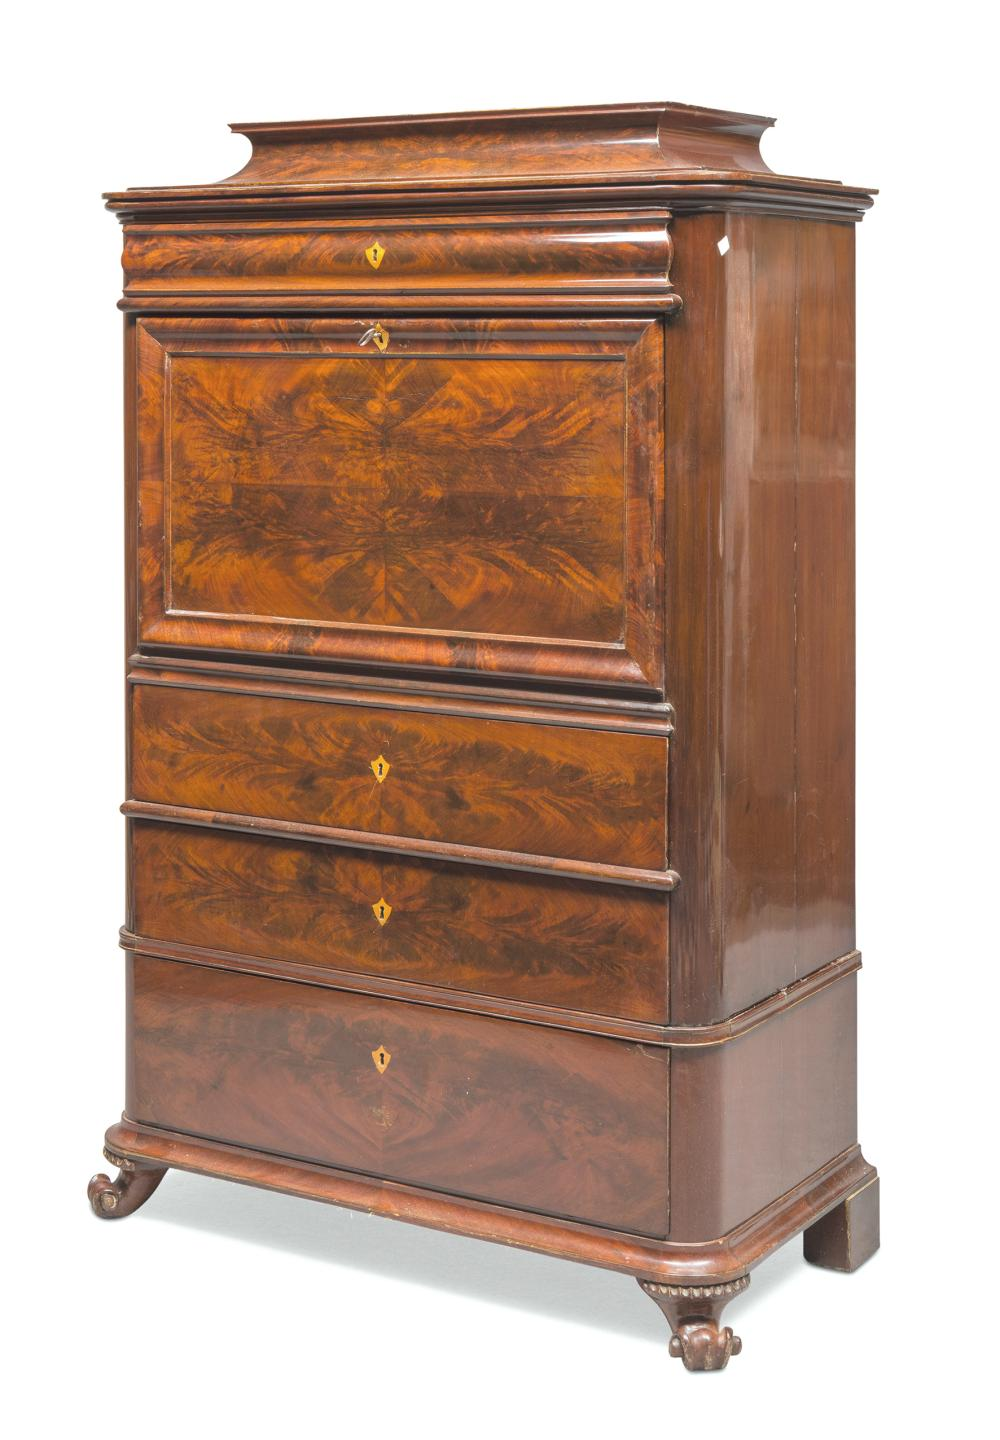 BEAUTIFUL SECRETAIRE IN FEATHER MAHOGANY, PROBABLY GERMANY, PERIOD CHARLES X